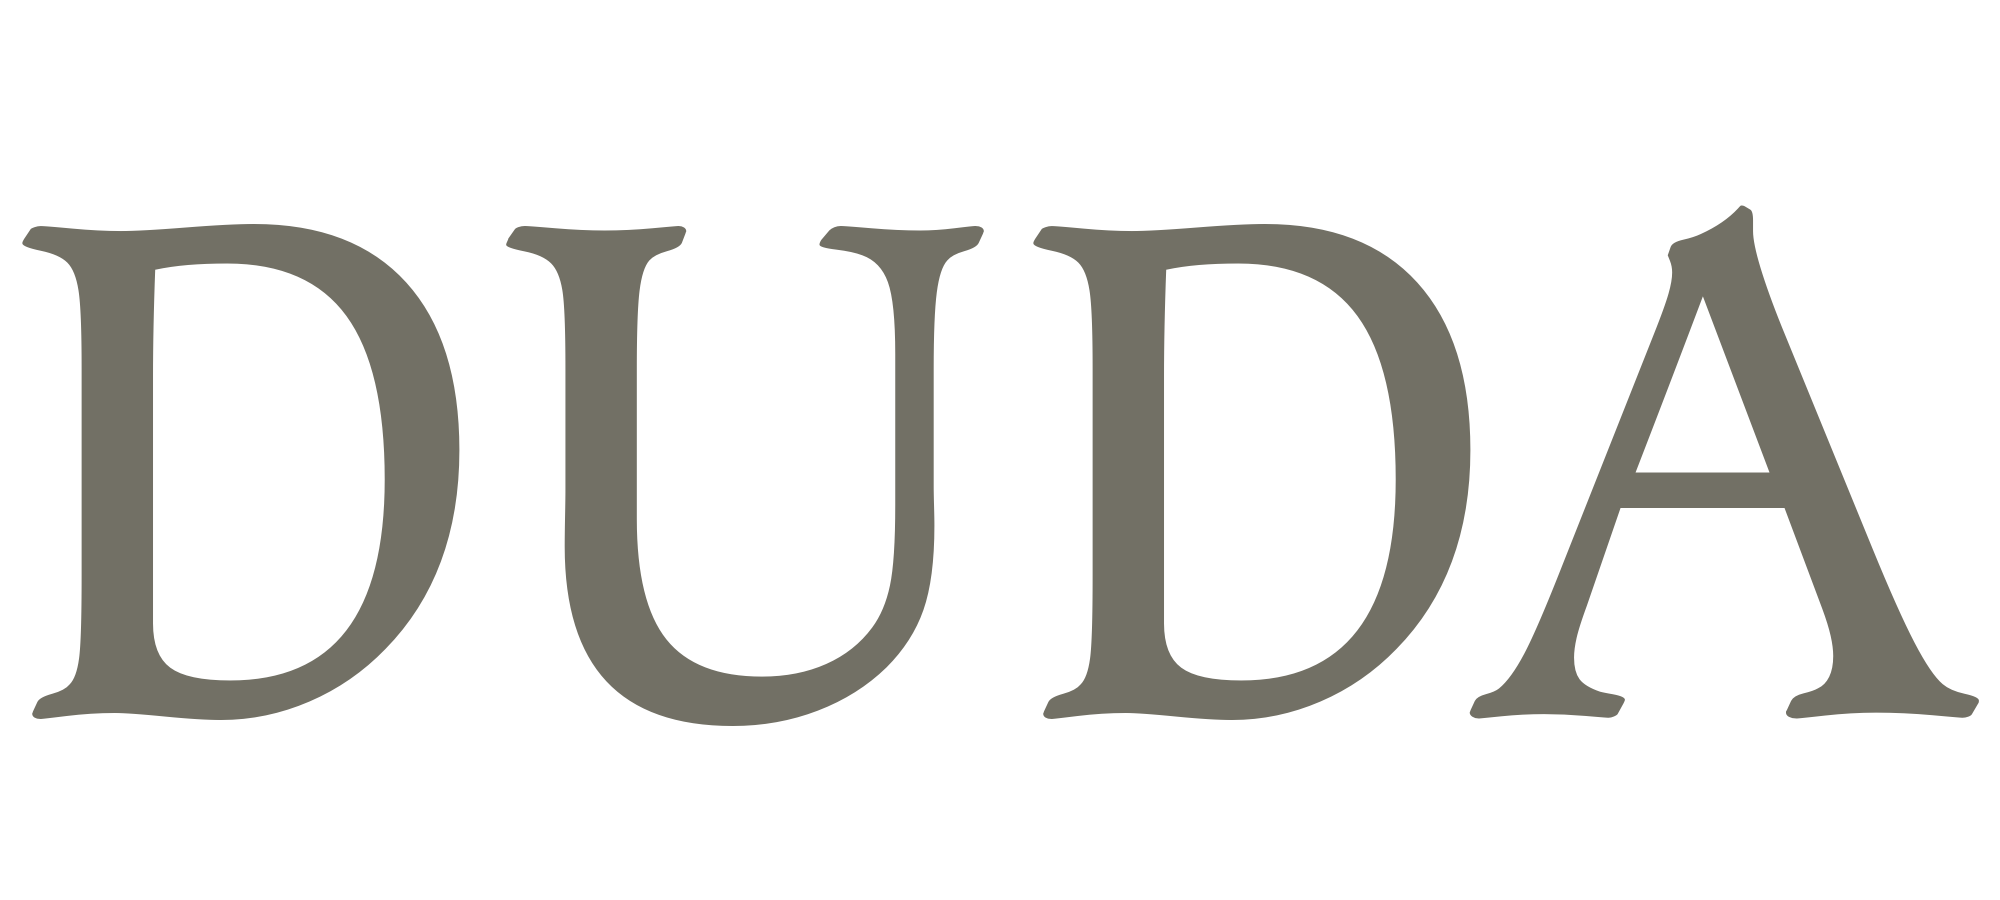 Duda Name S Meaning Of Duda